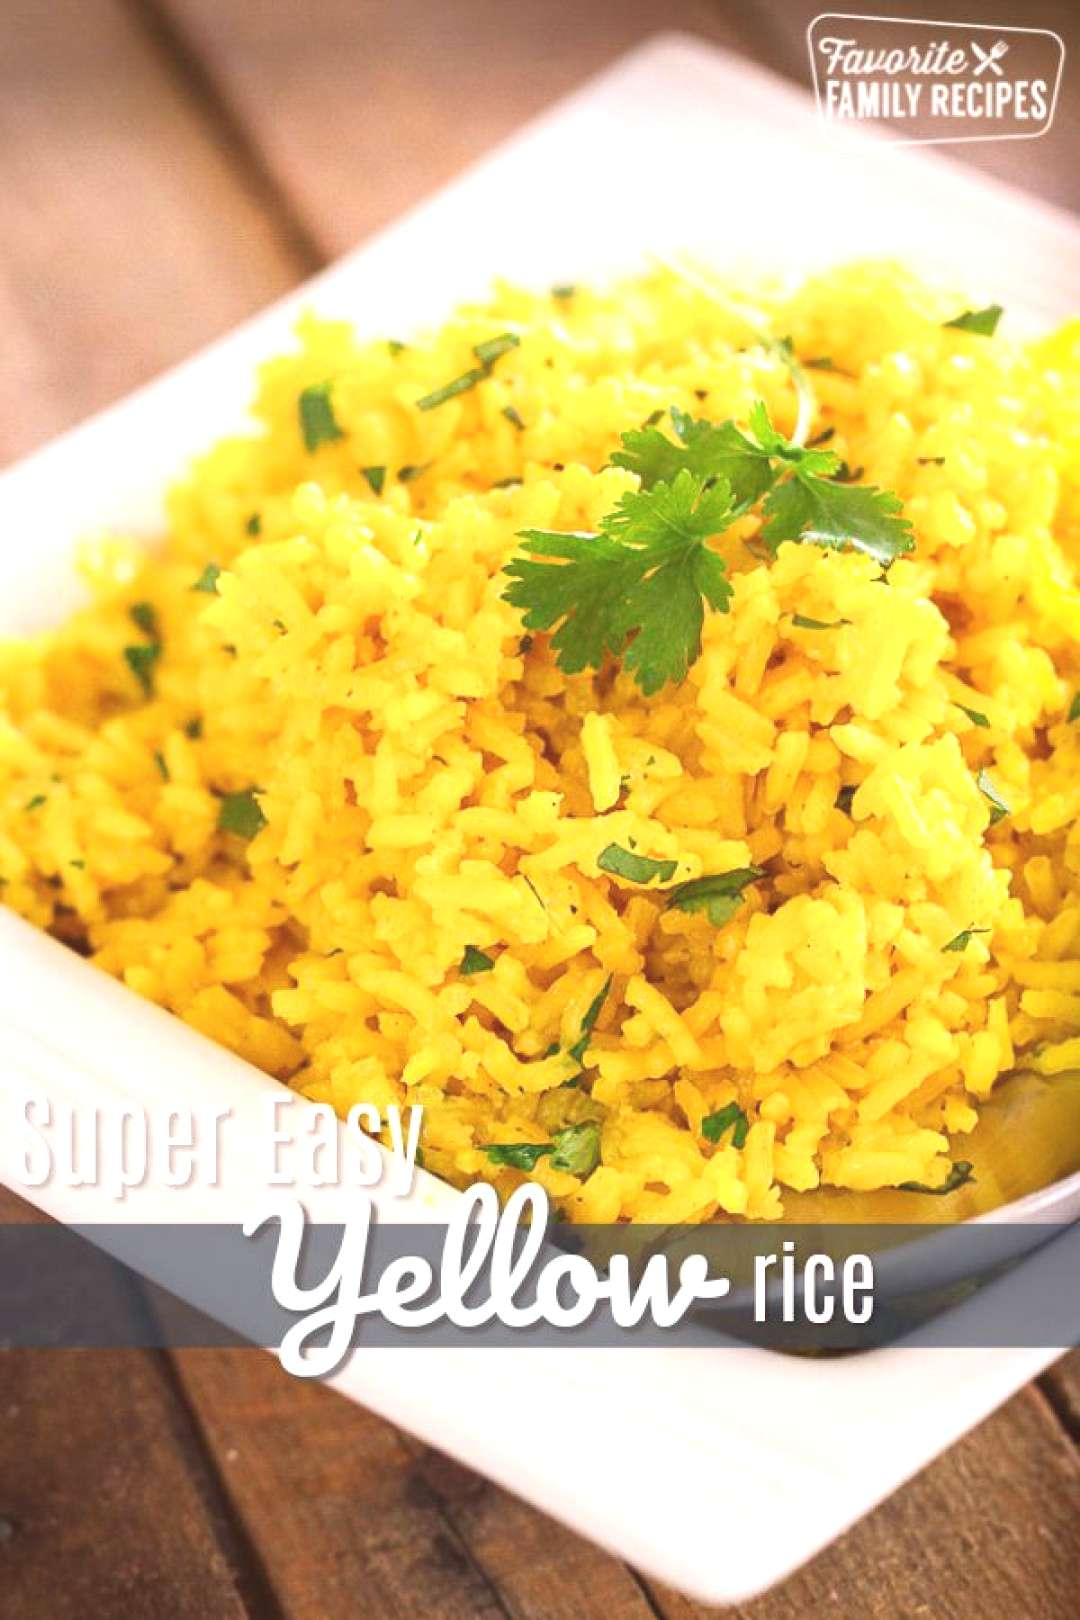 This Easy Yellow Rice side dish complements just about any meal! You can make this on the stove-top